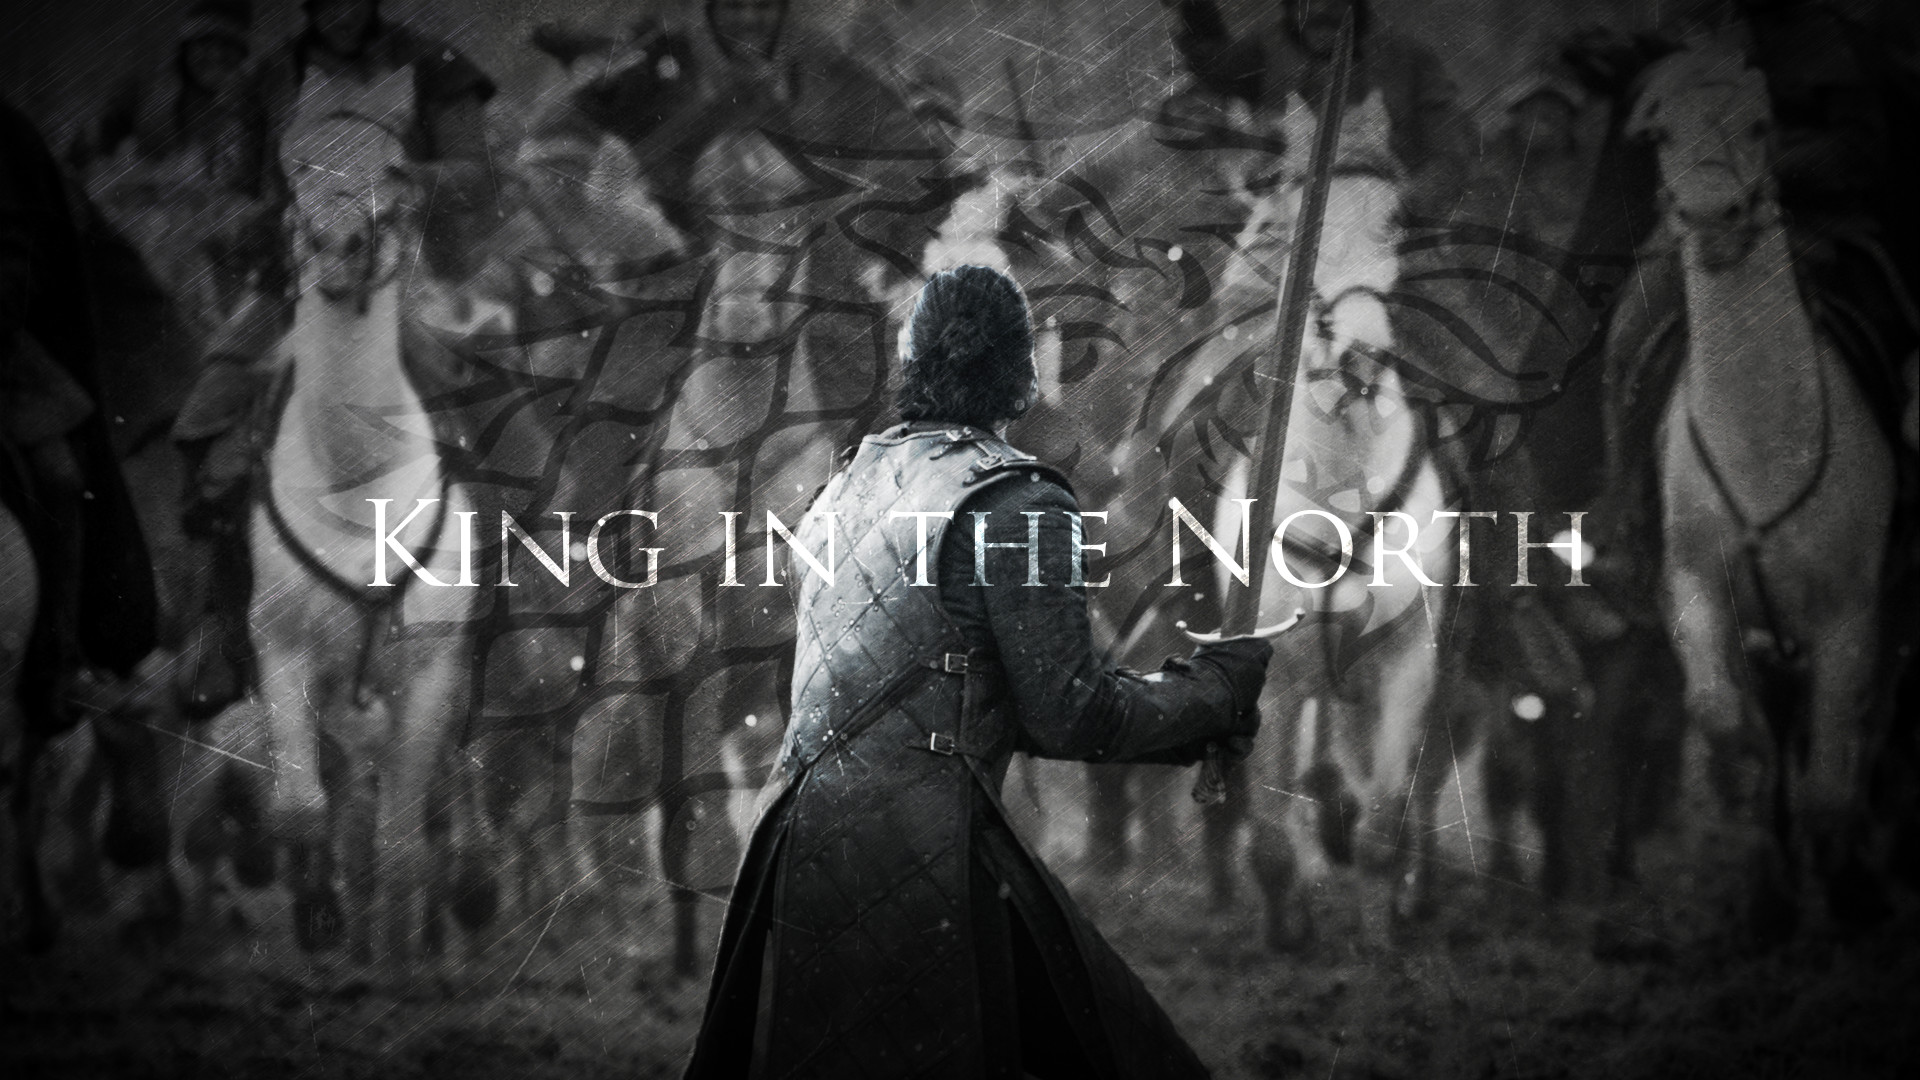 Res: 1920x1080, ... King in the North | Jon Snow | Game of Thrones by TaigaLife